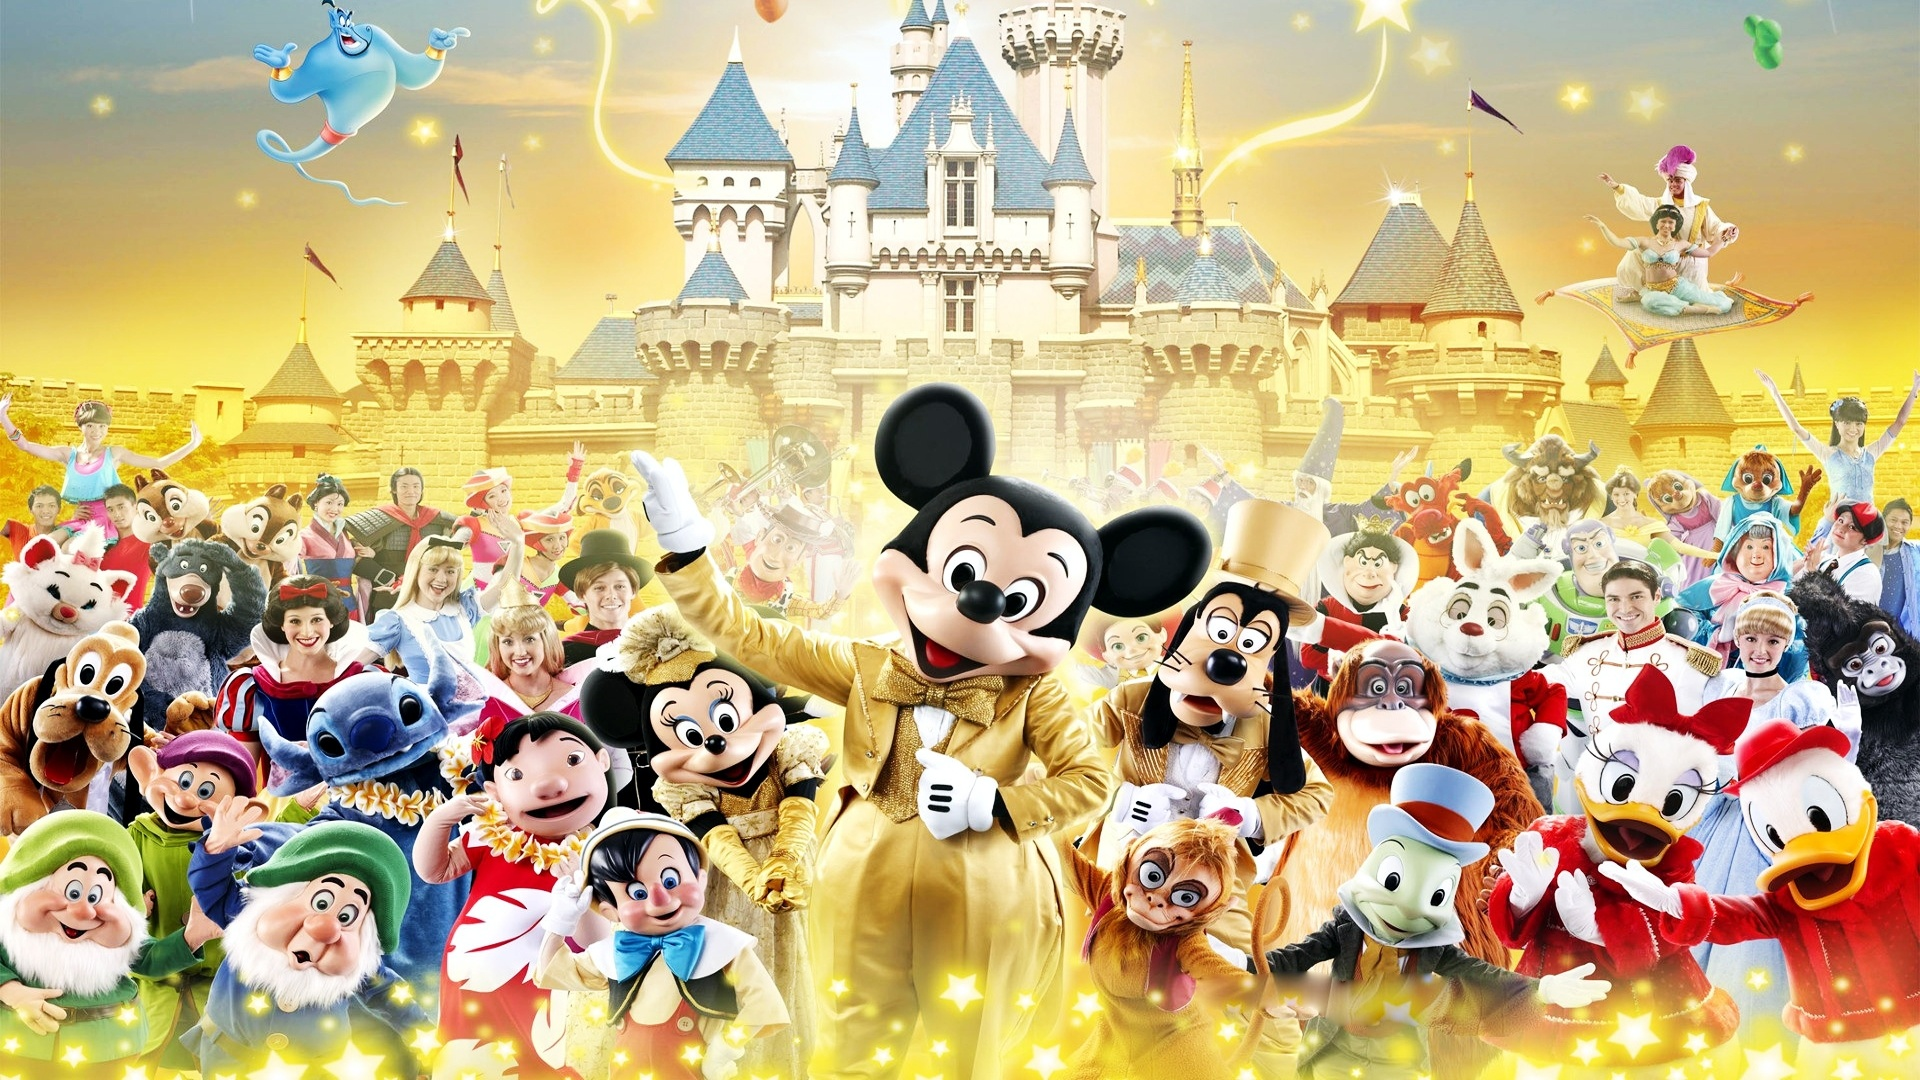 17 179024 free disney desktop backgrounds hd